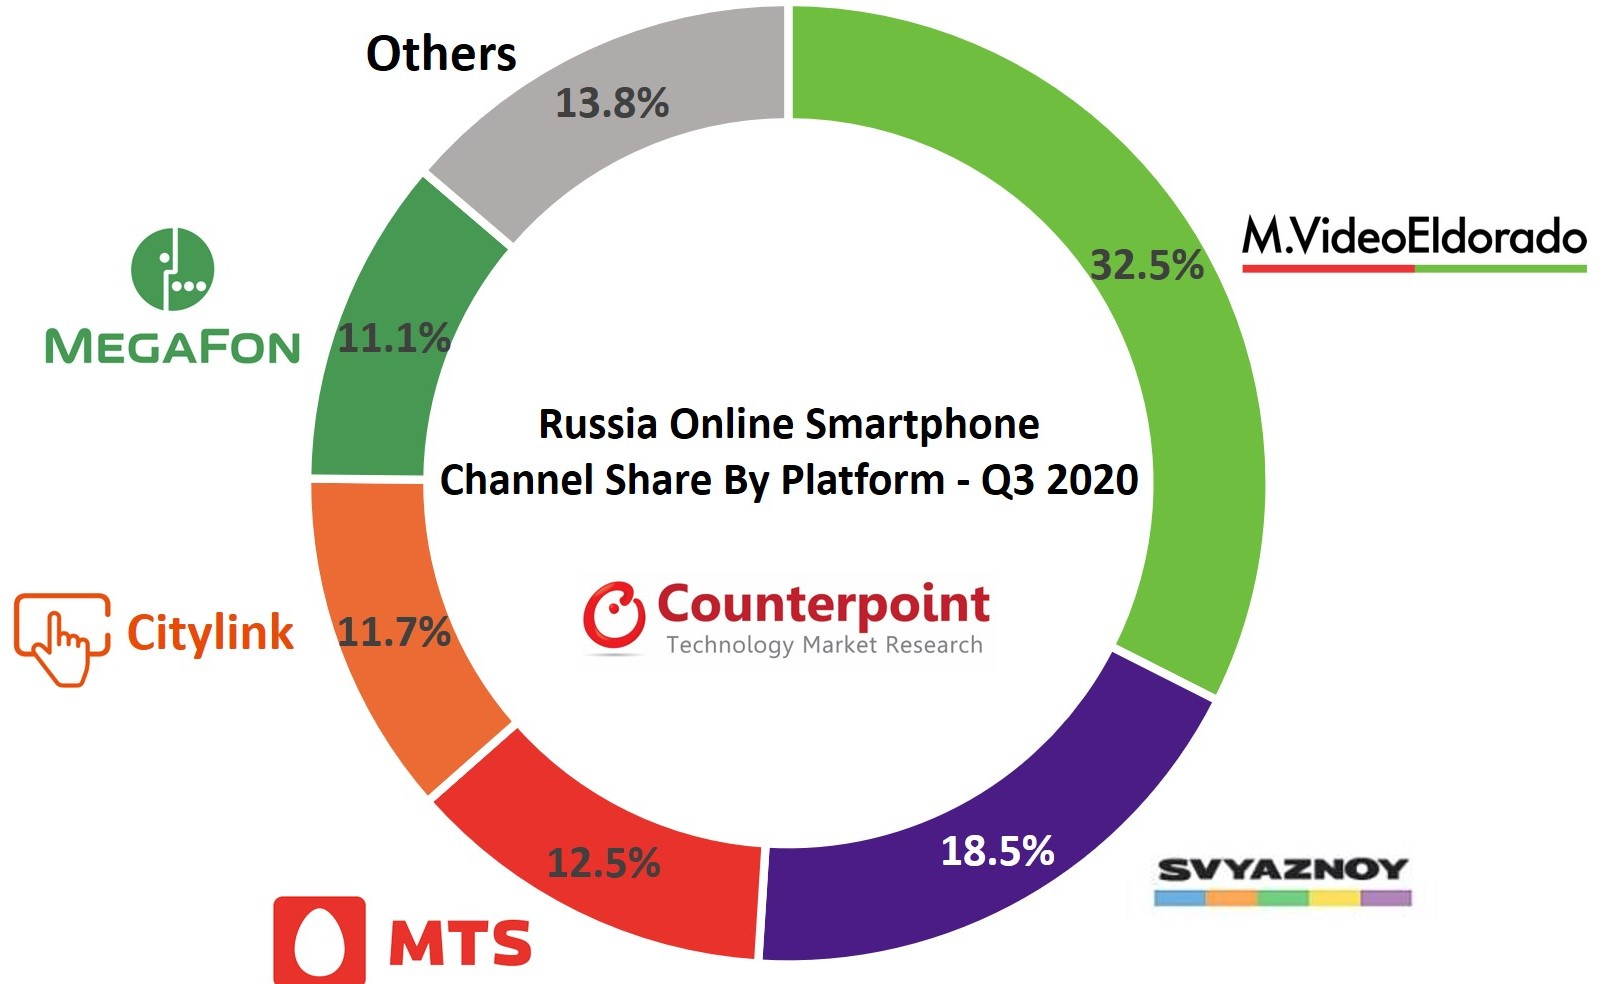 Russia Smartphone Channel Share - Counterpoint